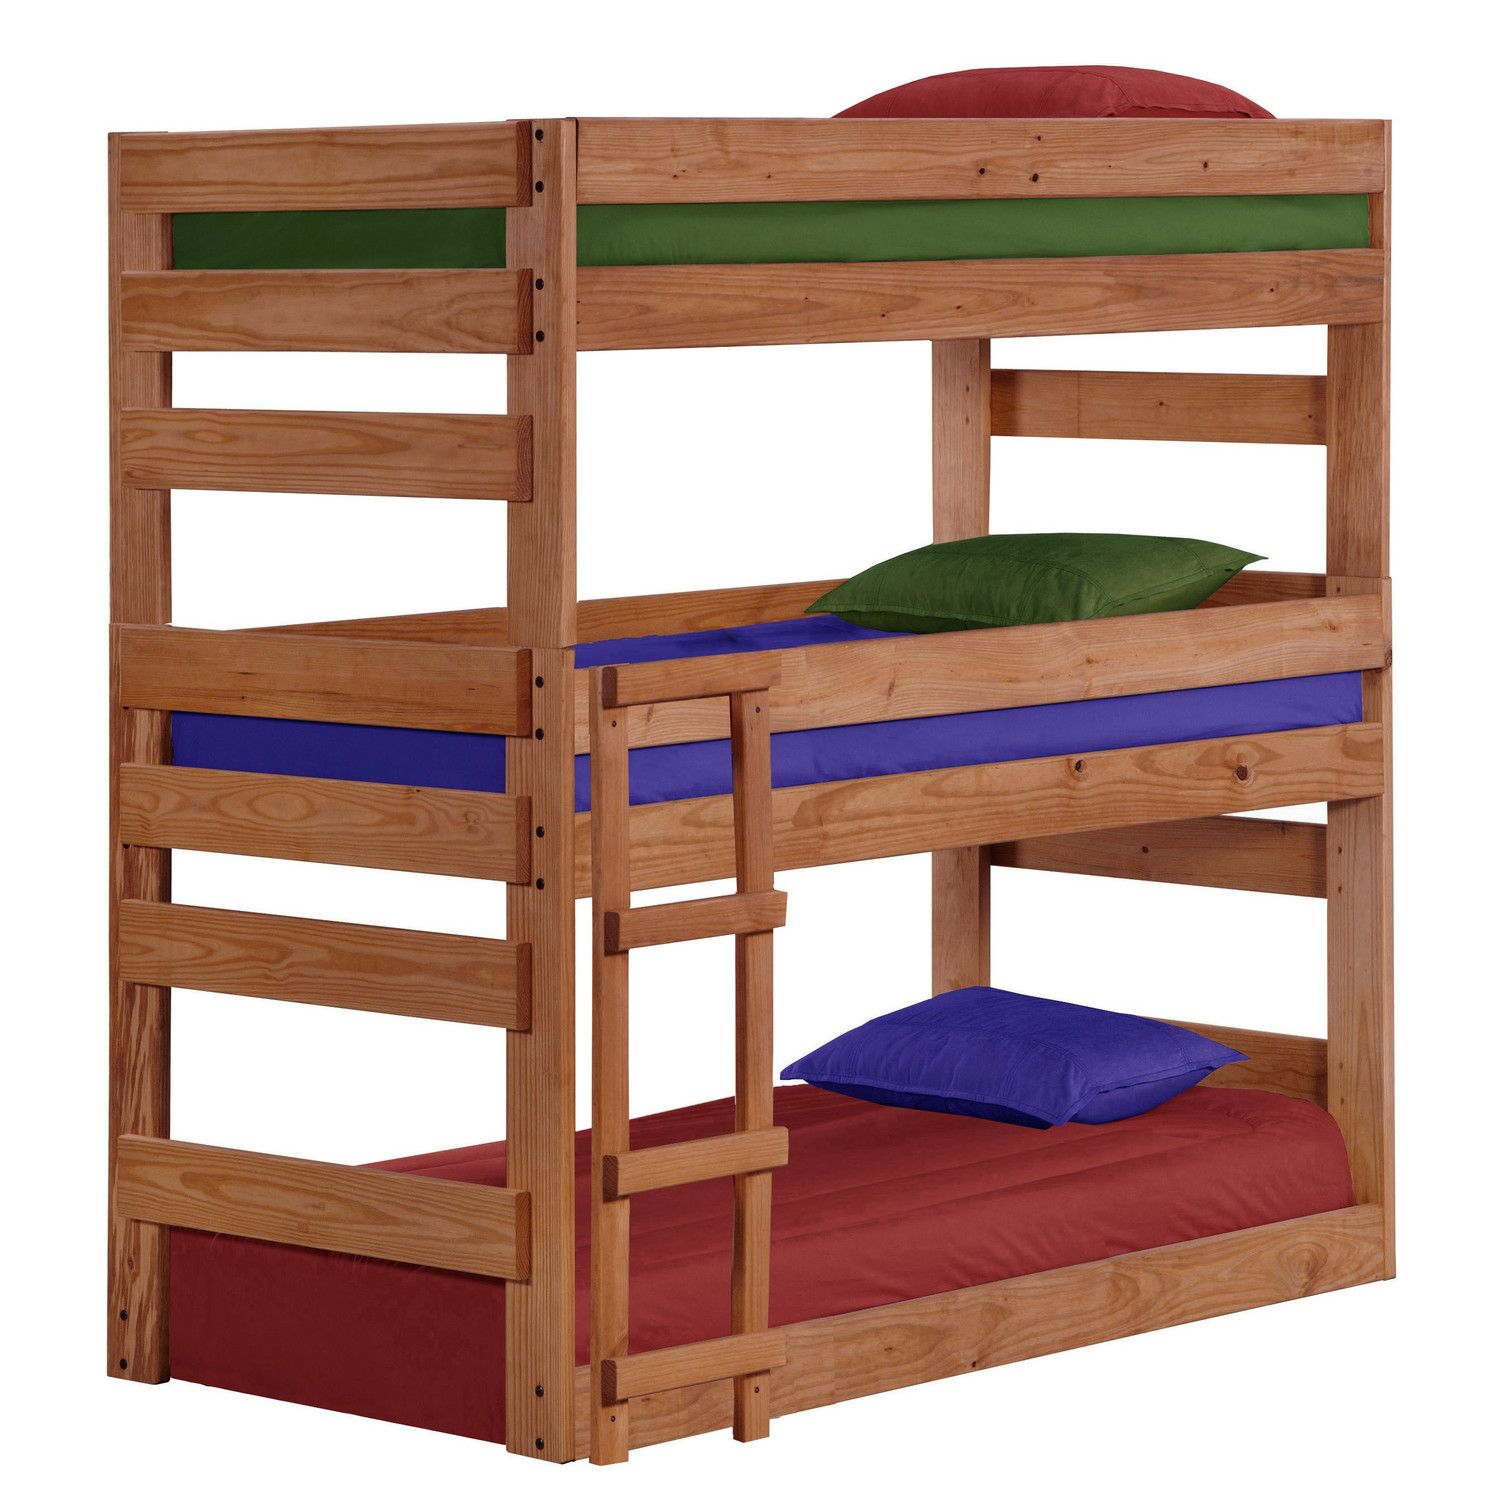 Shop wayfair for kids beds to match every style and budget enjoy